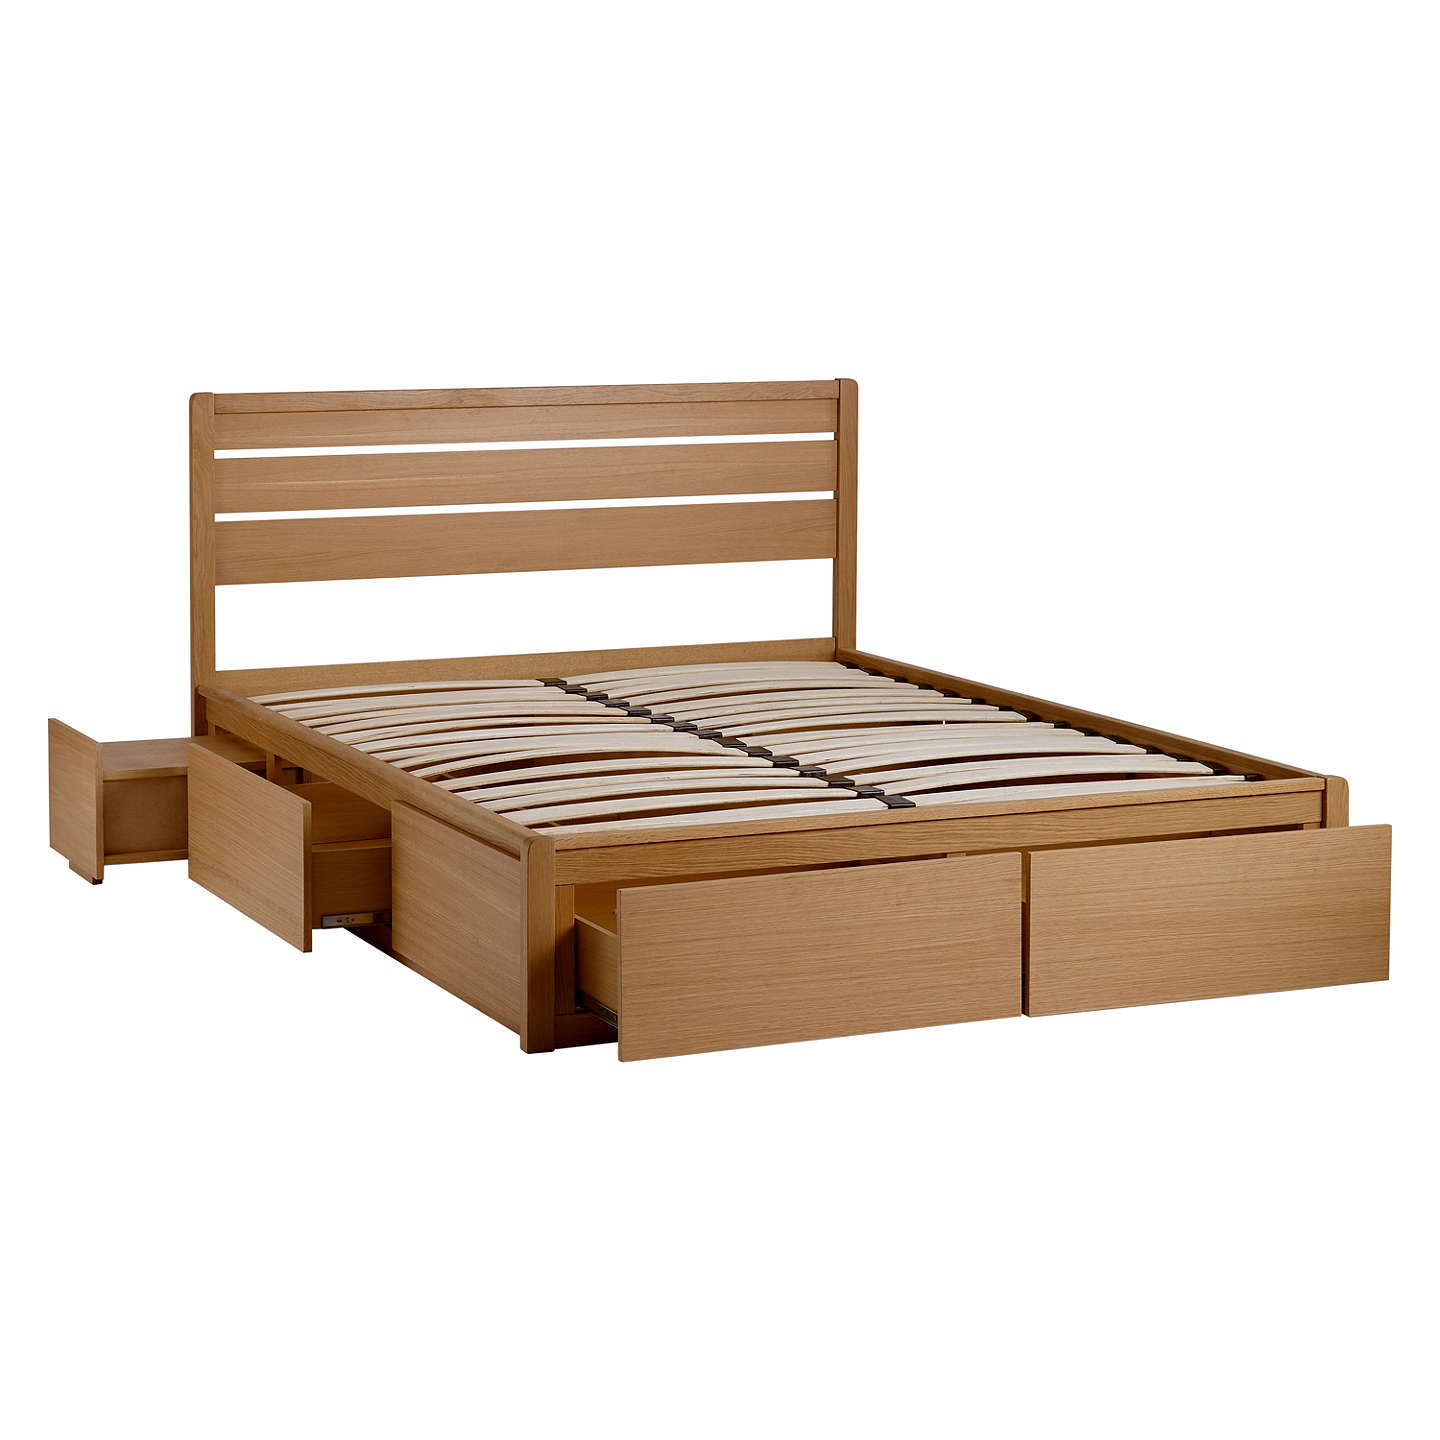 fabric bedroom fasfafas fortytwo ezequiel beds frame storage bed furniture